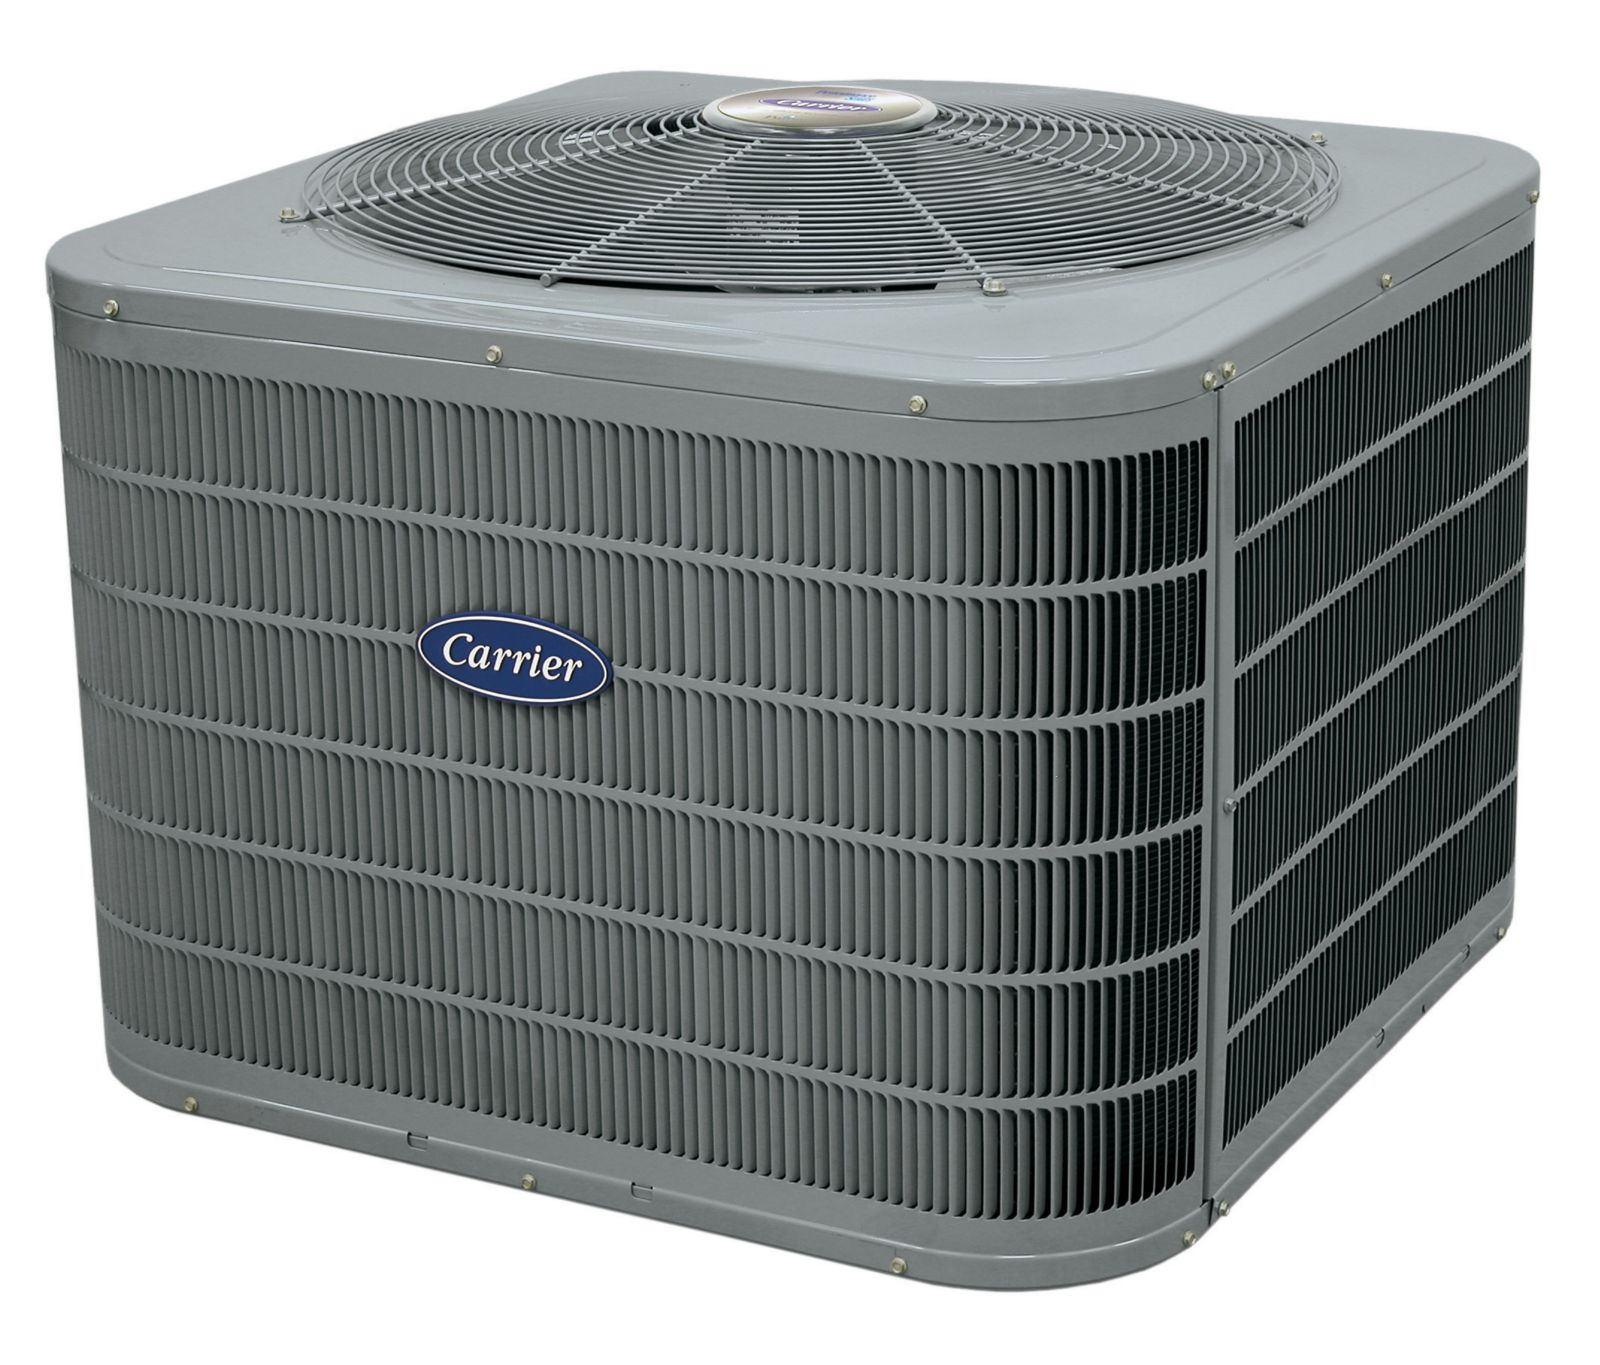 Carrier Comfort 2 5 Ton 14 Seer Residential Heat Pump Condensing Unit Carrier Hvac